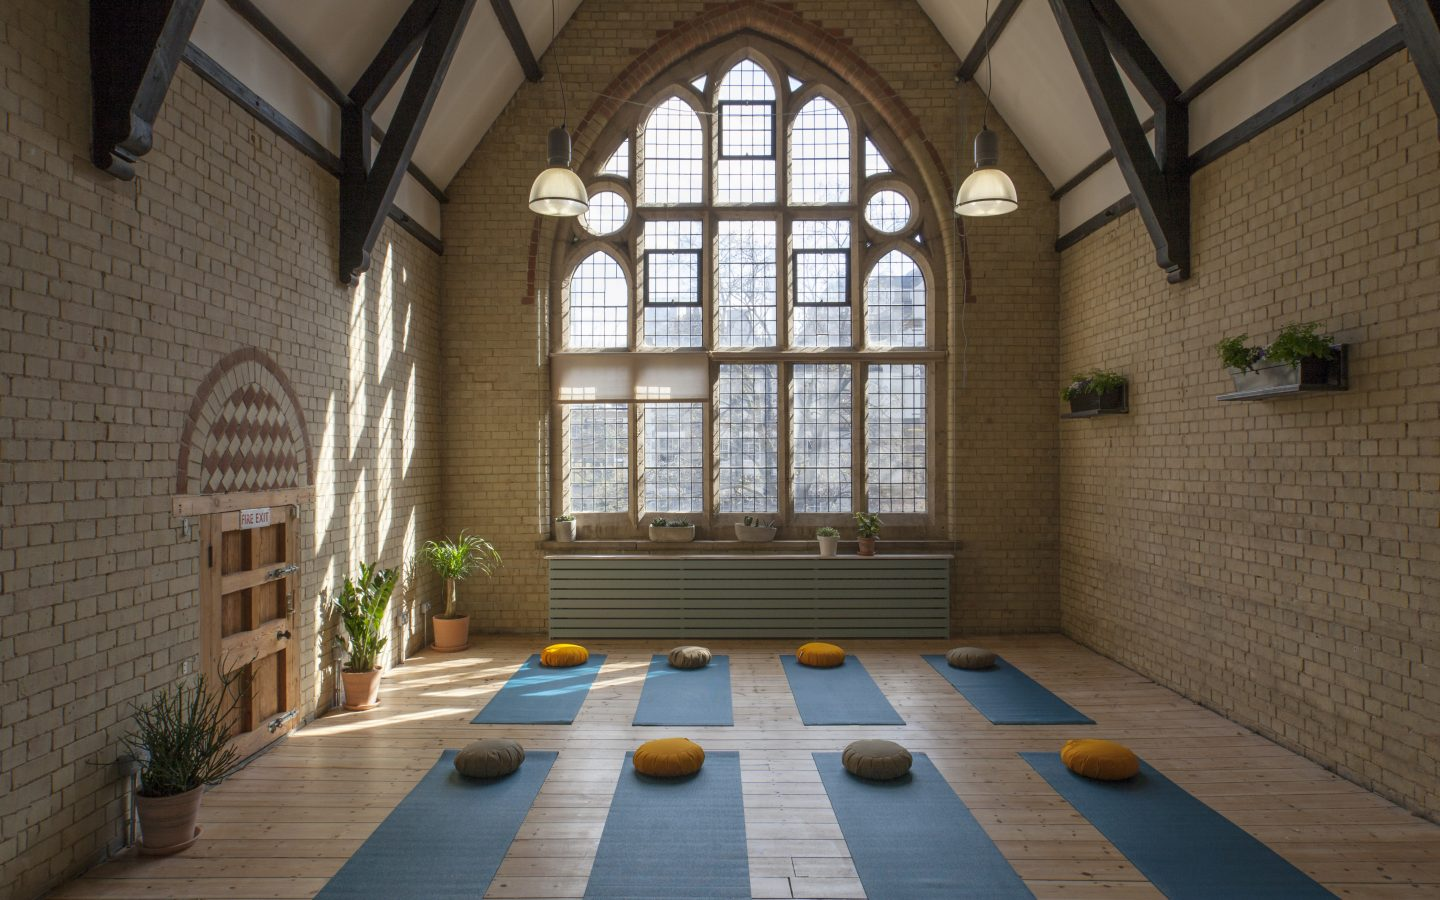 42 Acres, Shoredtich, Yoga Classes on Wednesday mornings, 8.00am to 9.00am